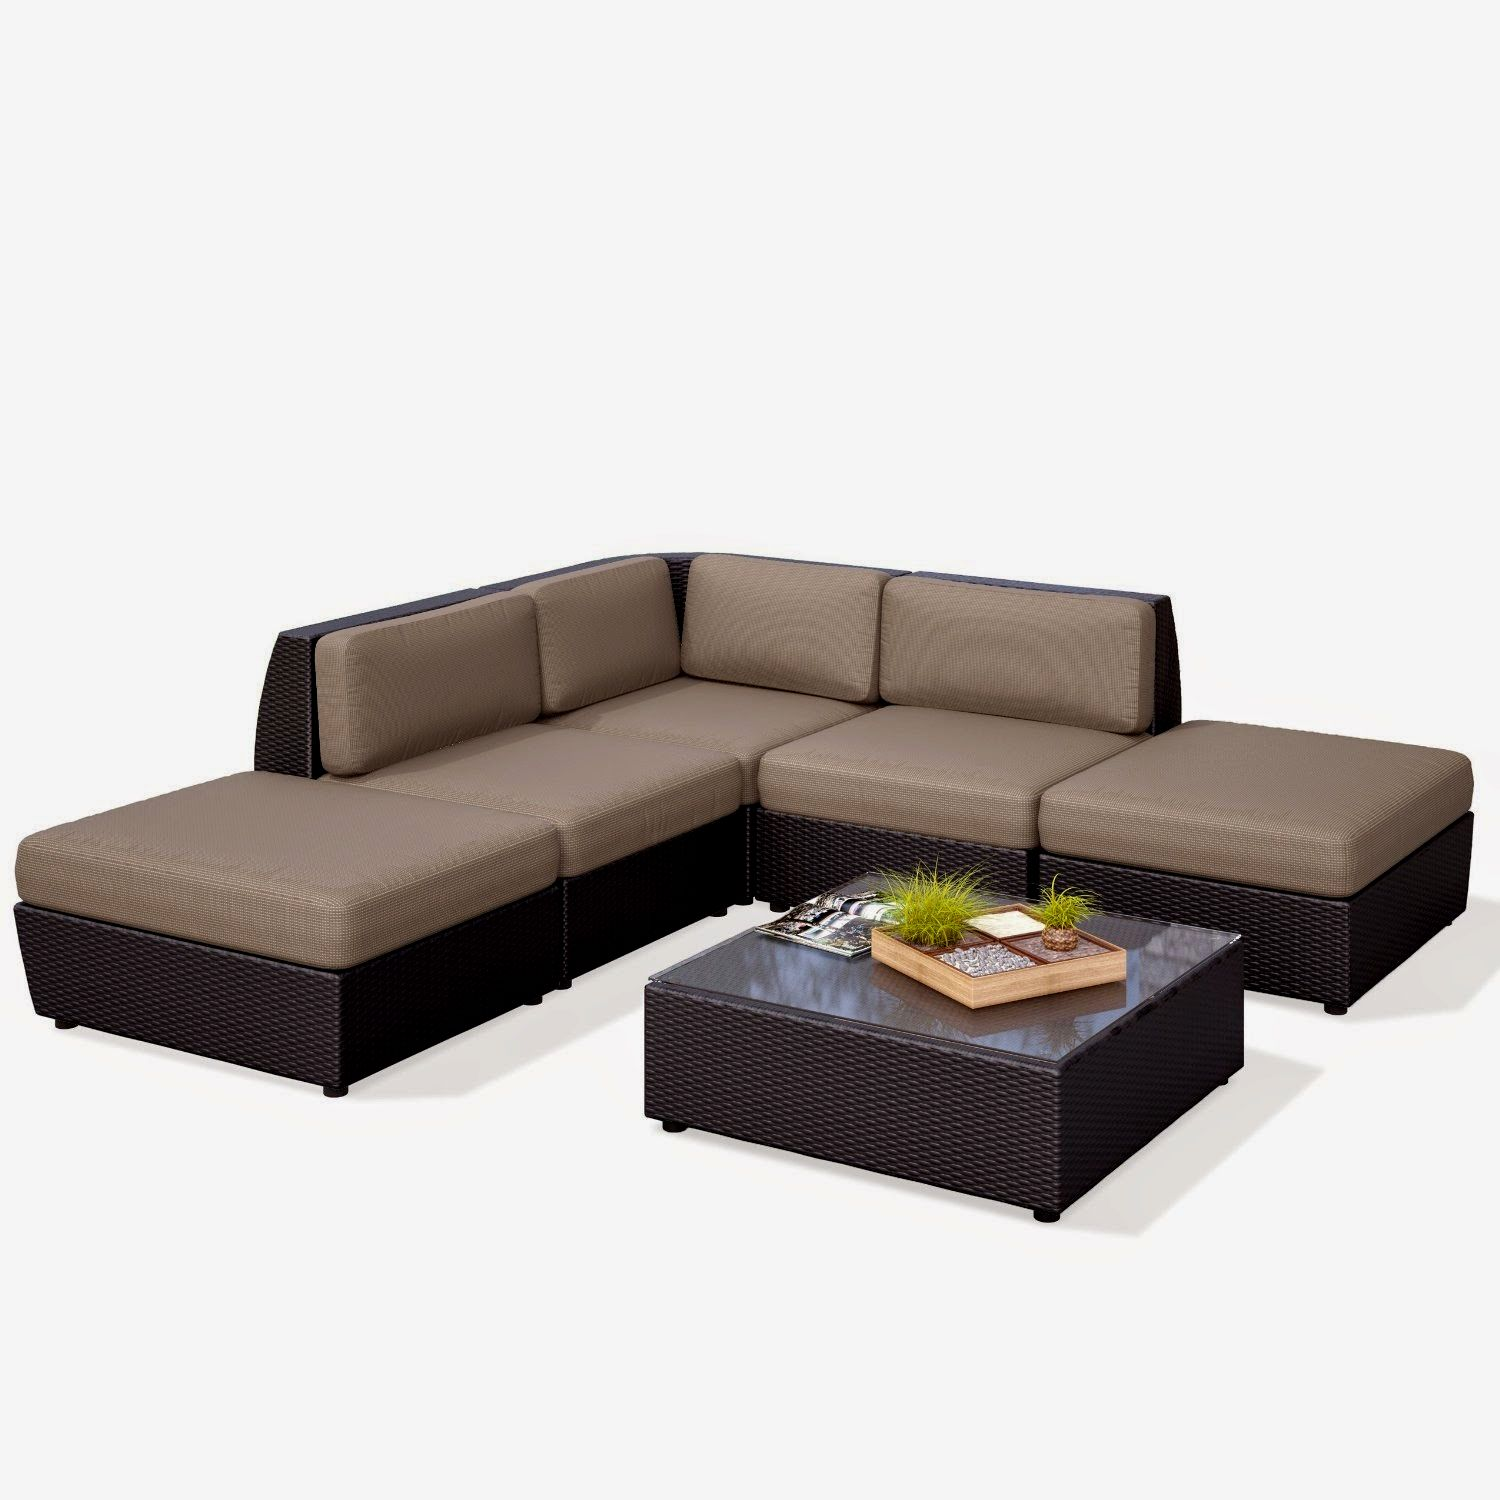 best of curved outdoor sofa image-Modern Curved Outdoor sofa Photograph